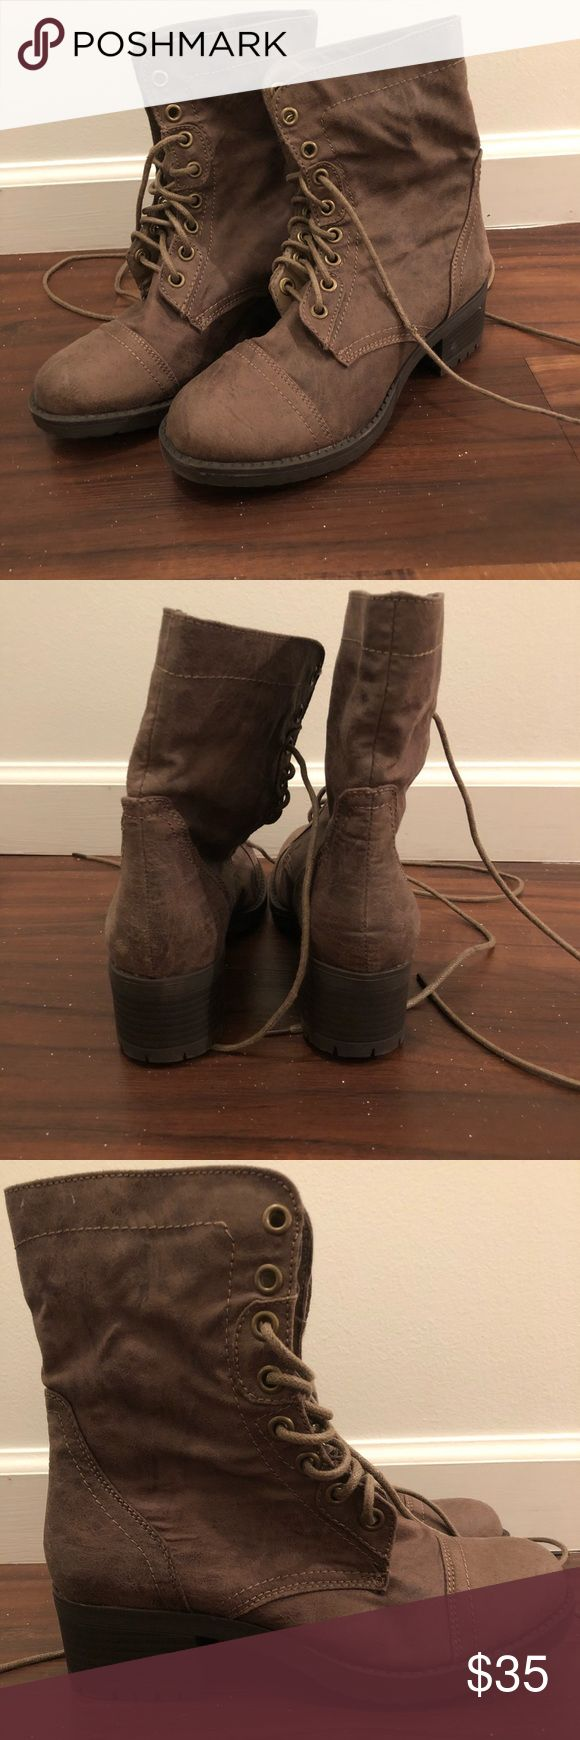 Brown Combat boots women size 6 Brand new Brown, light material Never worn Size 6  Open to offers JustFab Shoes Combat & Moto Boots